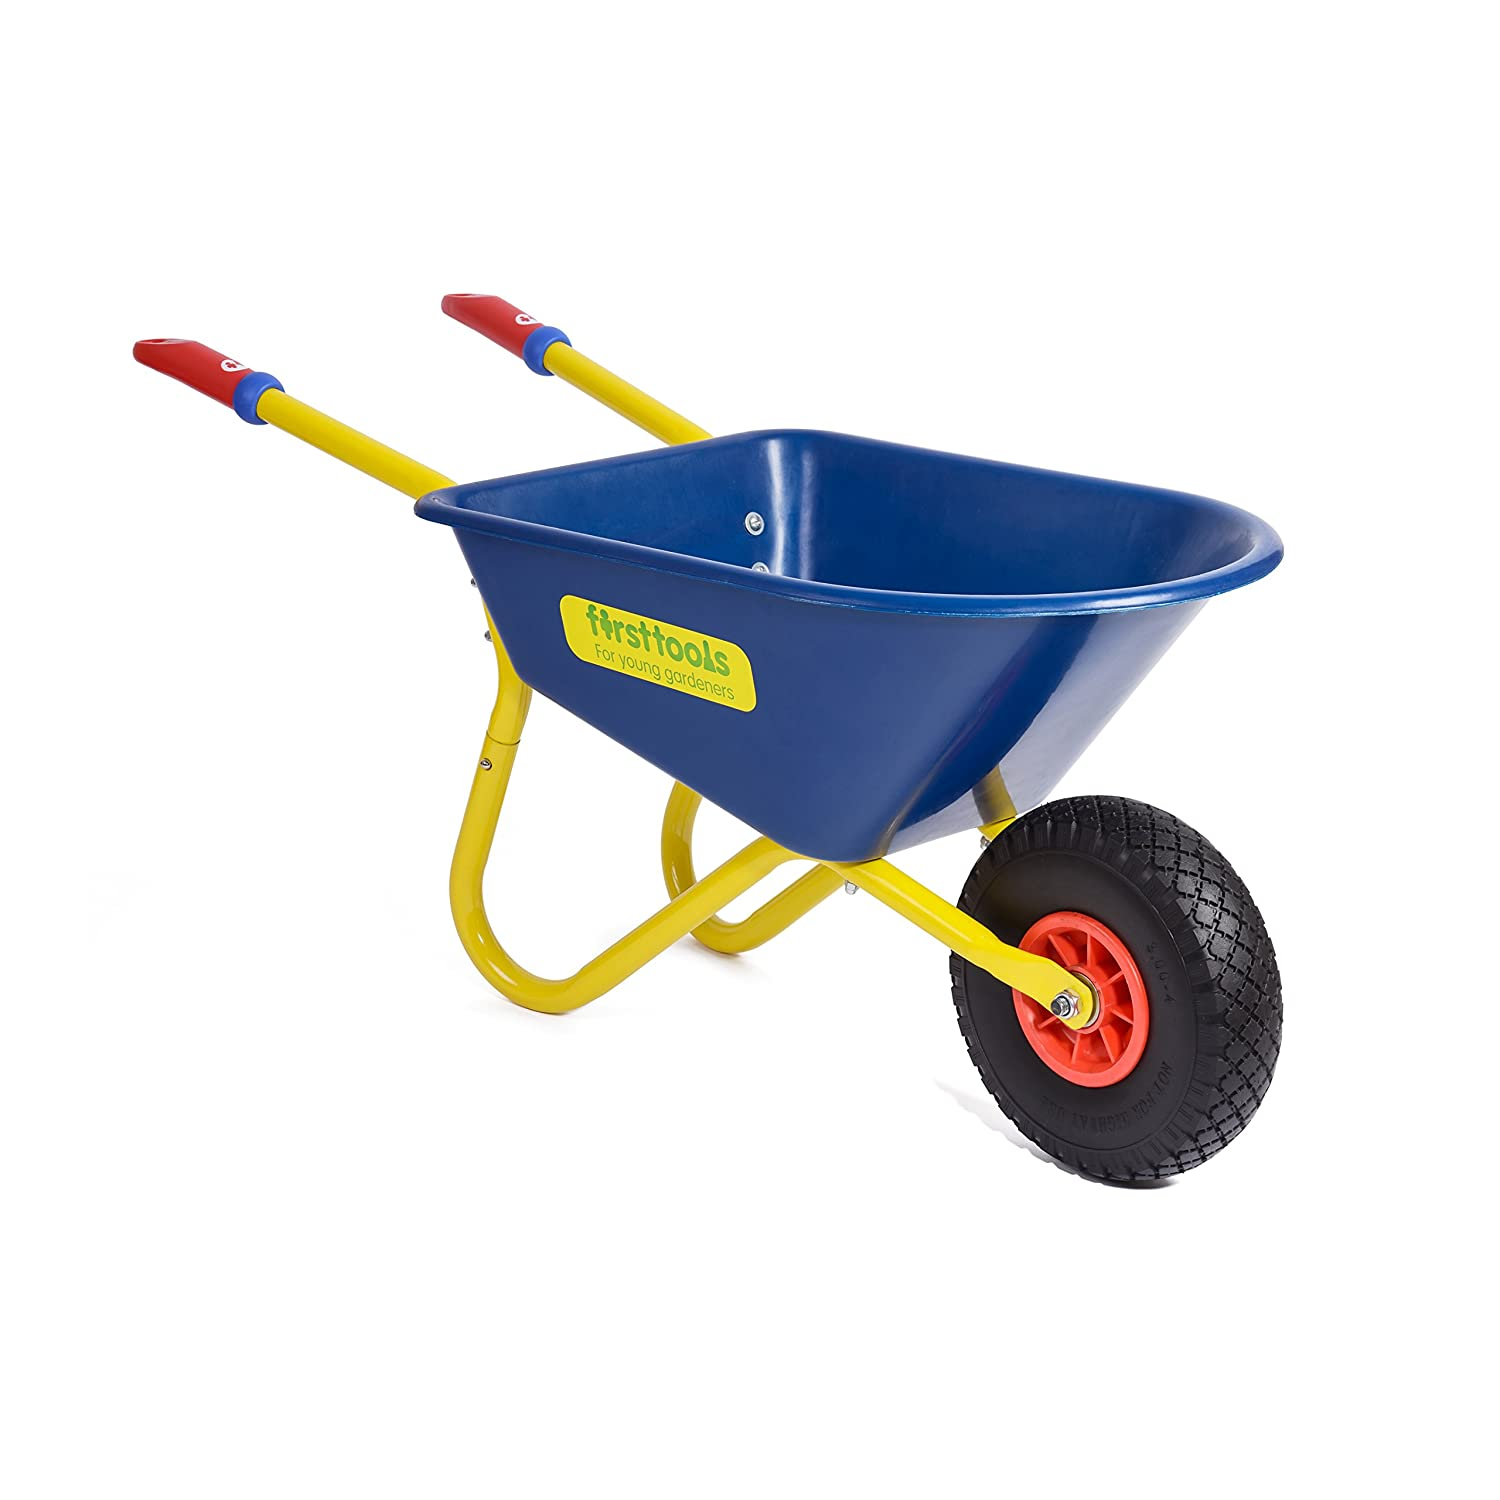 firsttools Kinder Schubkarre, L 100 cm, H 44 cm - robust und langlebig